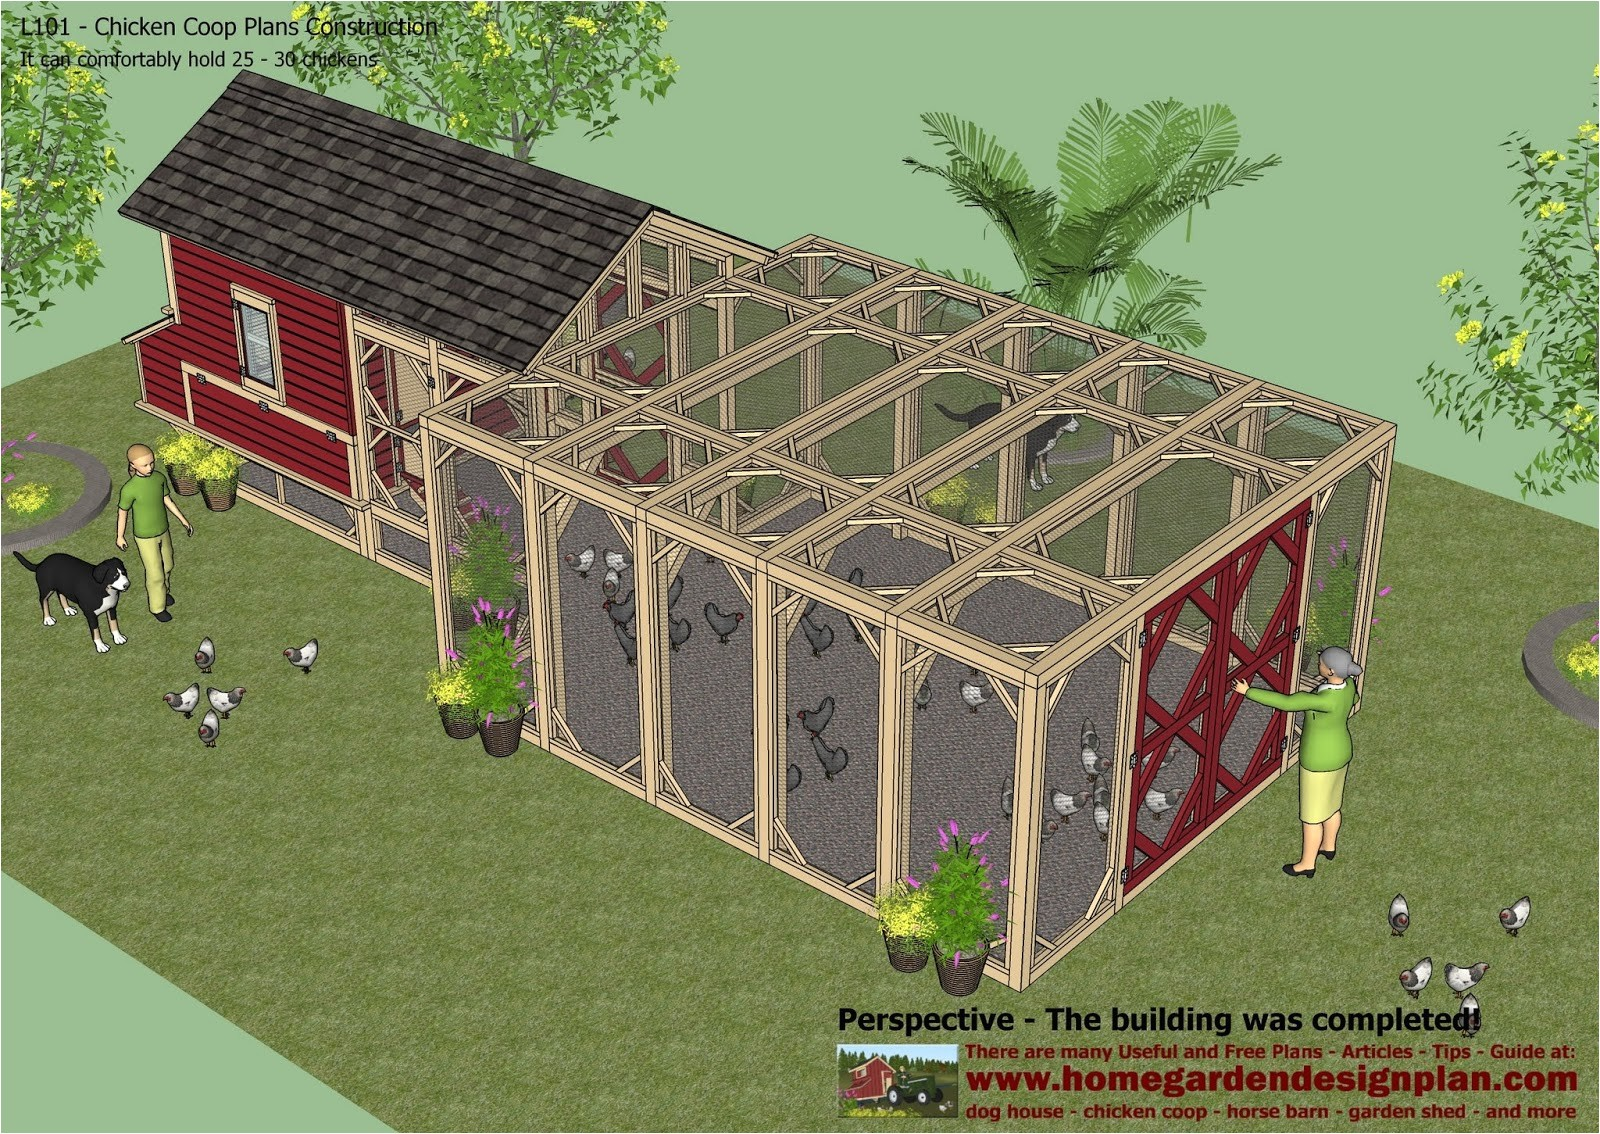 Home Garden Design Plan Hens Plans How to Build A Chicken Coop for 20